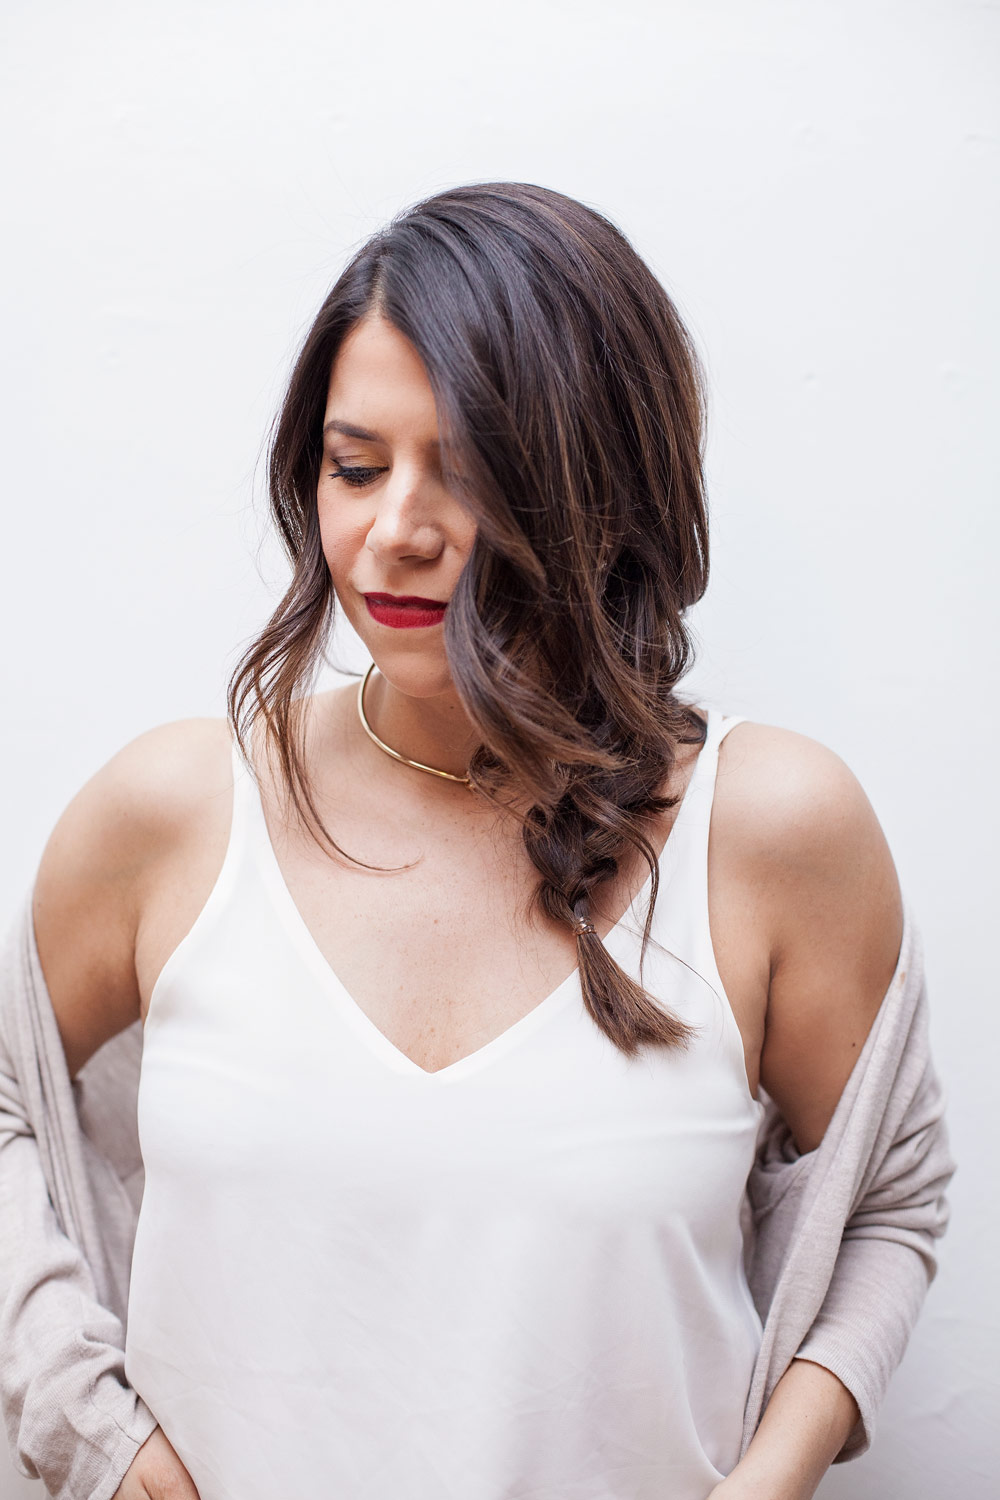 Easy hairstyles for New Year's Eve Braid tutorial how to style your hair this season Corporate Catwalk New York City